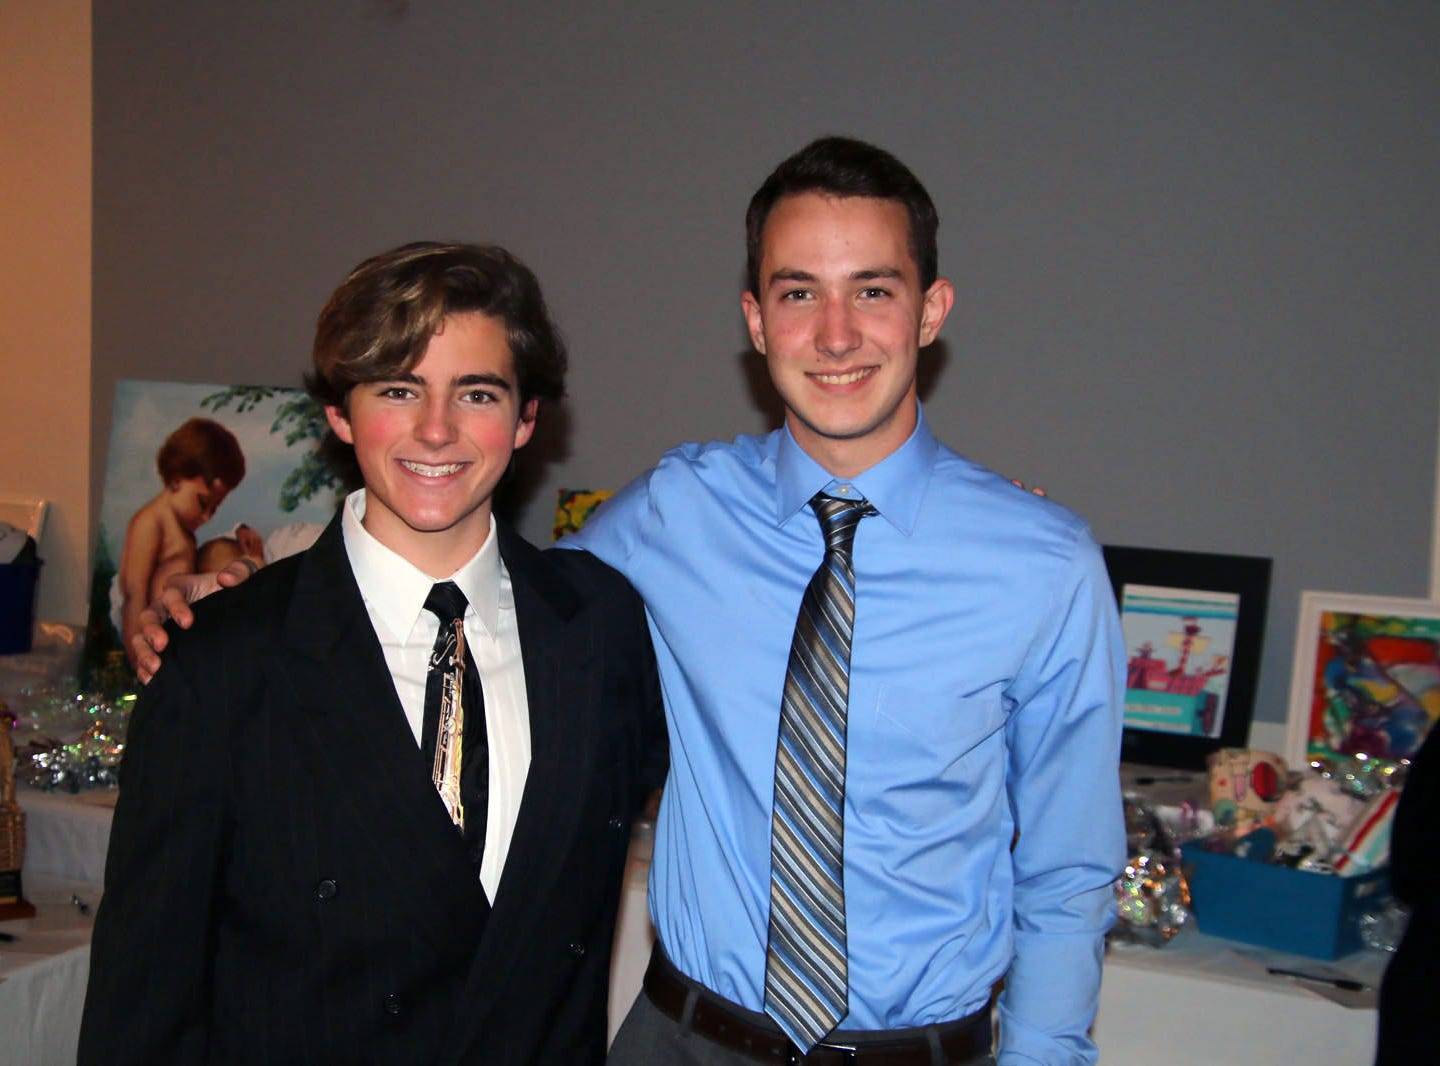 Roseman and Colin Dobbins at the Dollars for Scholars fundraiser at the Fort Pierce Yacht Club on Jan. 27.